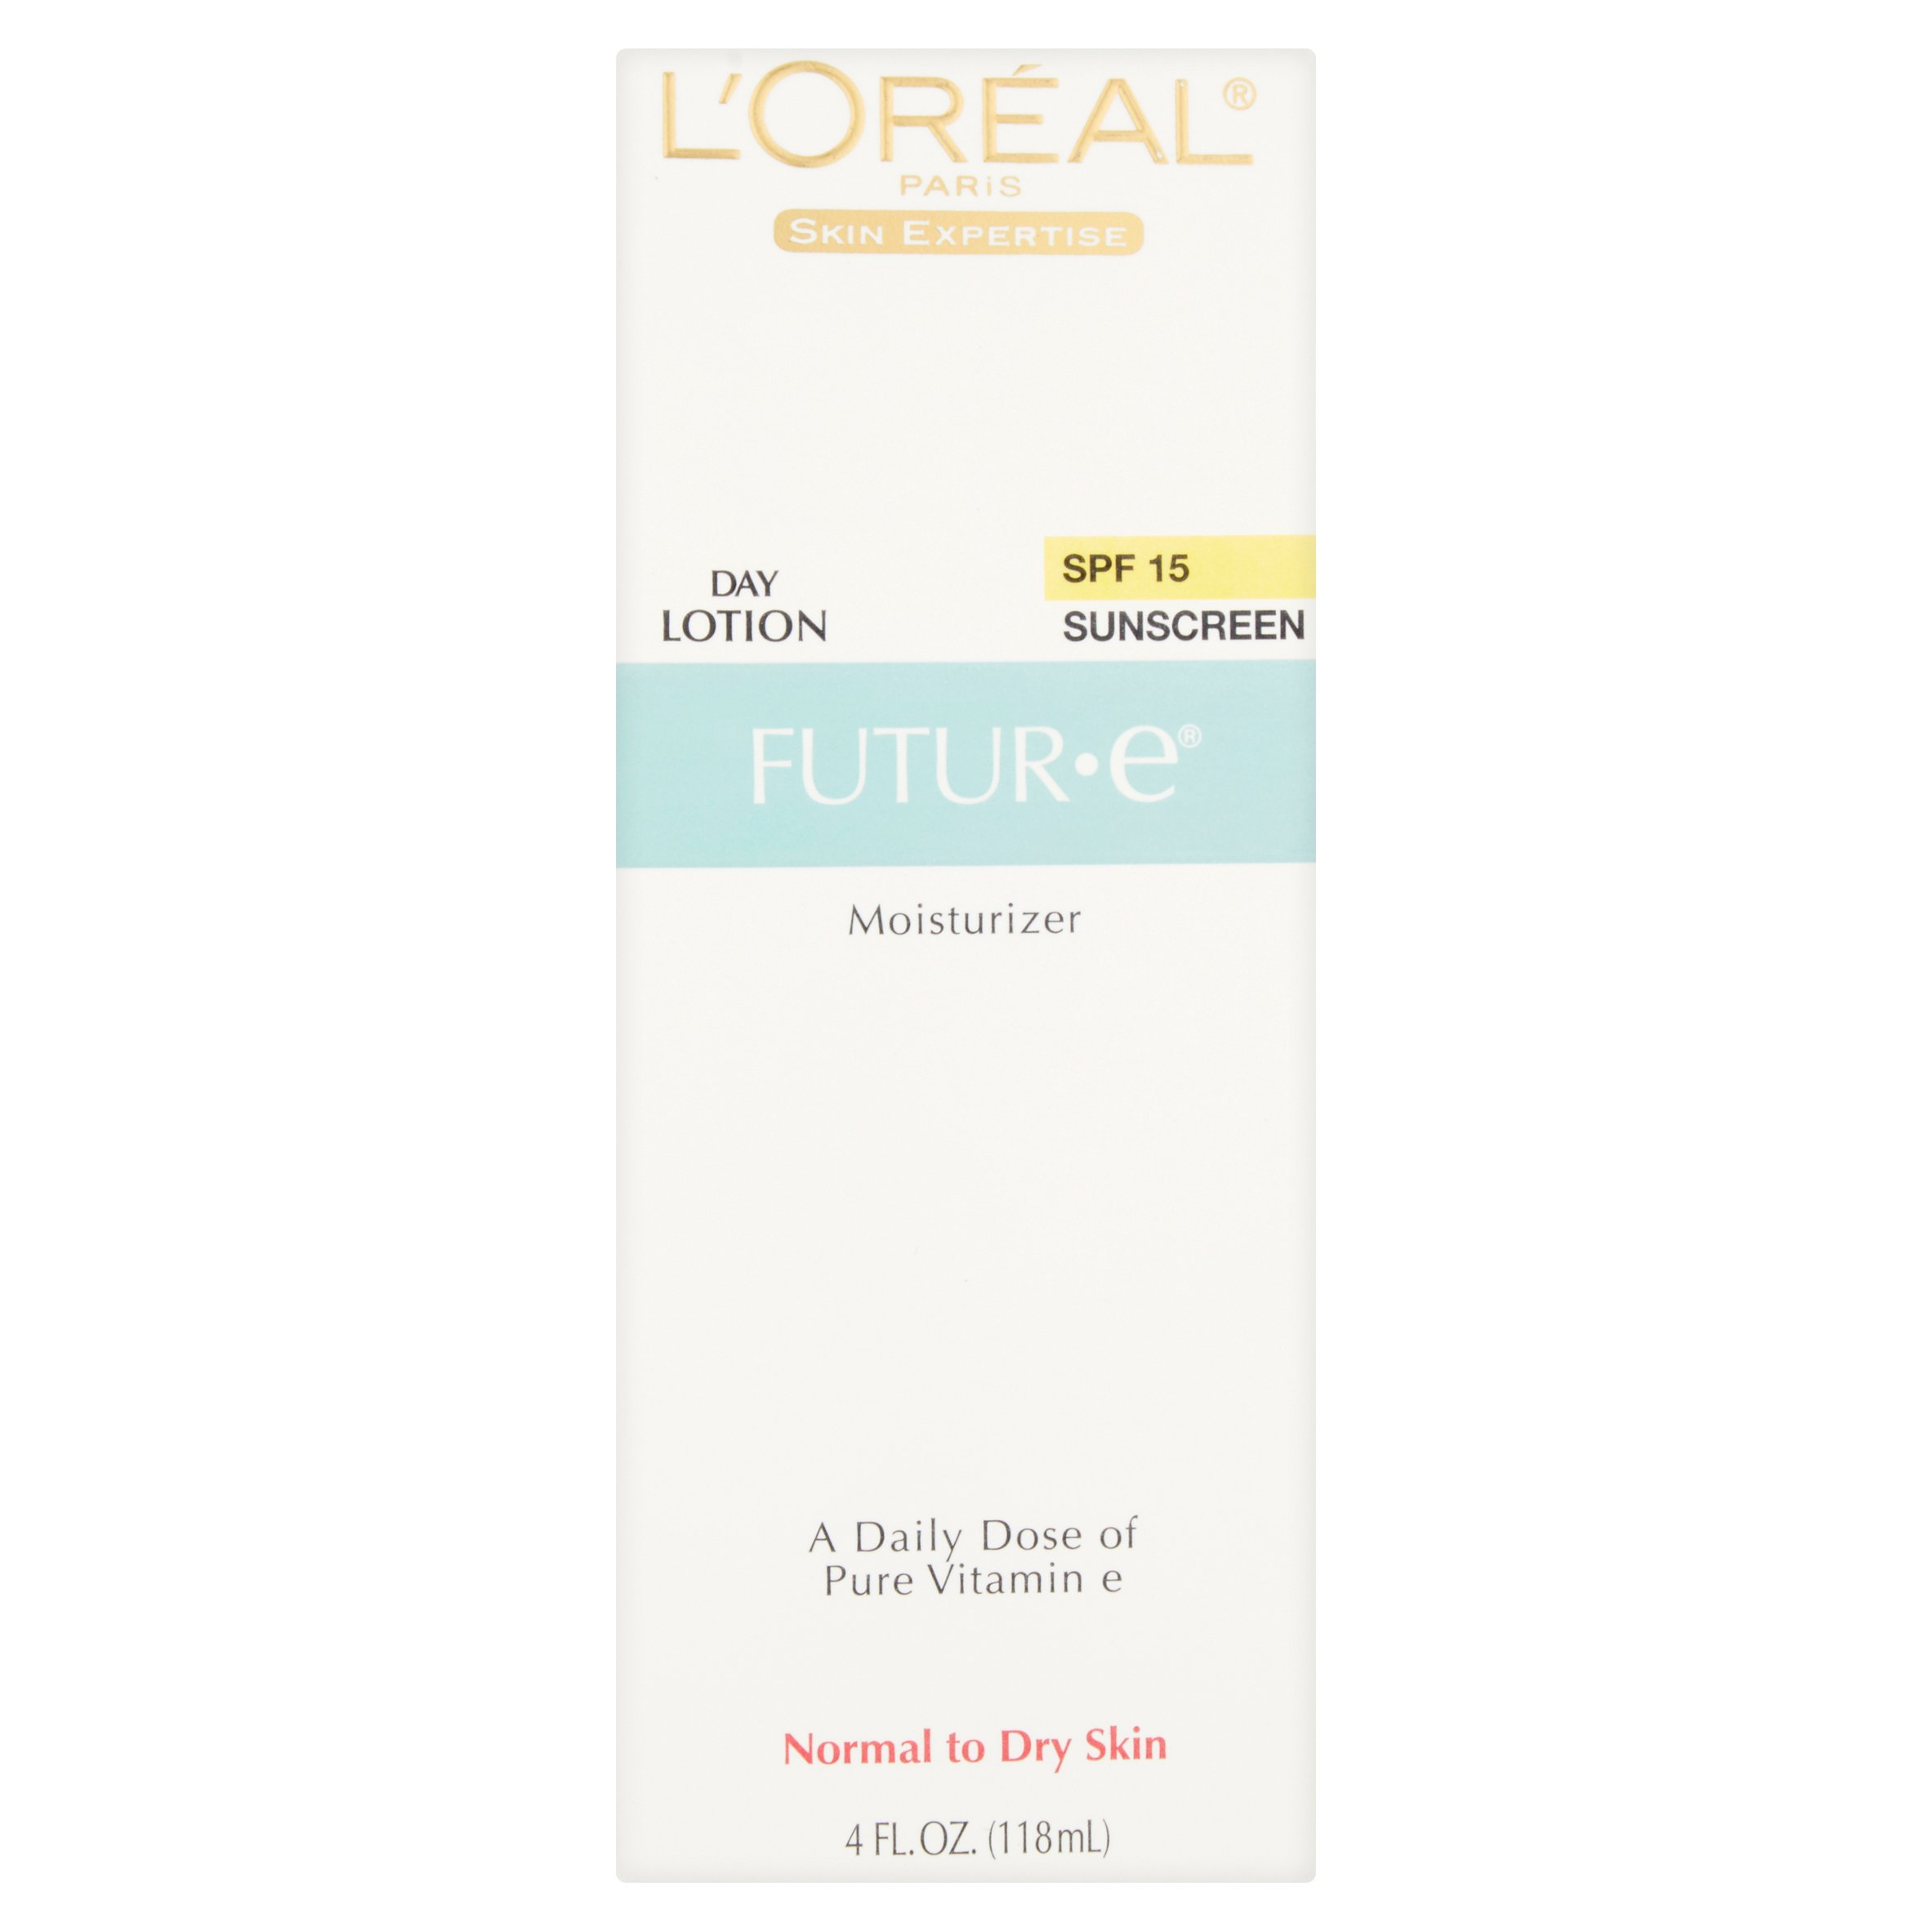 L'Oreal Paris Futuroe Day Lotion Sunscreen Moisturizer, SPF 15, 4 fl oz